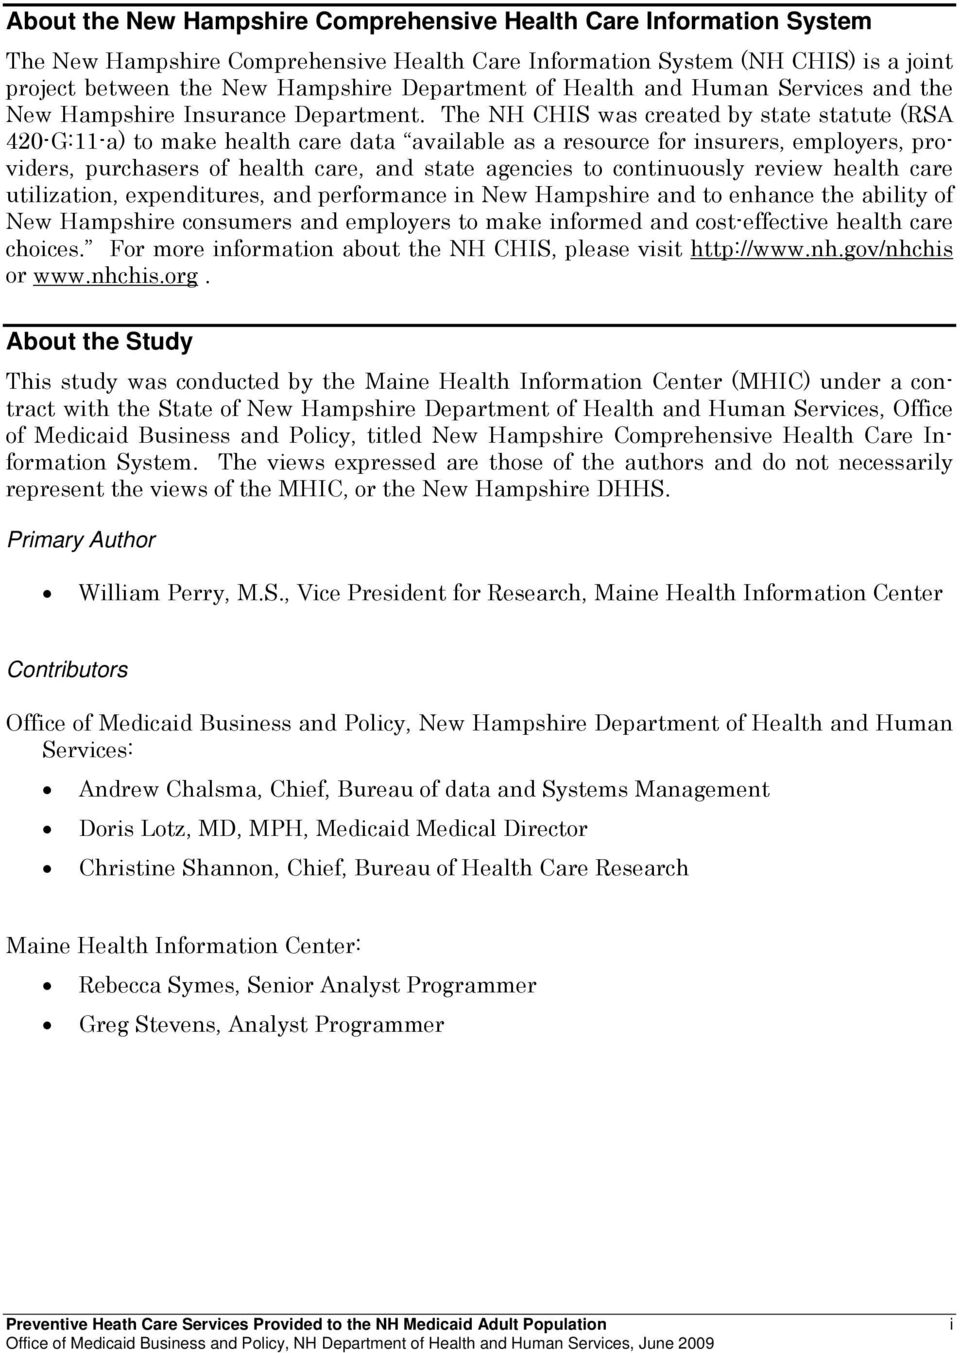 The NH CHIS was created by state statute (RSA 420-G:11-a) to make health care data available as a resource for insurers, employers, providers, purchasers of health care, and state agencies to